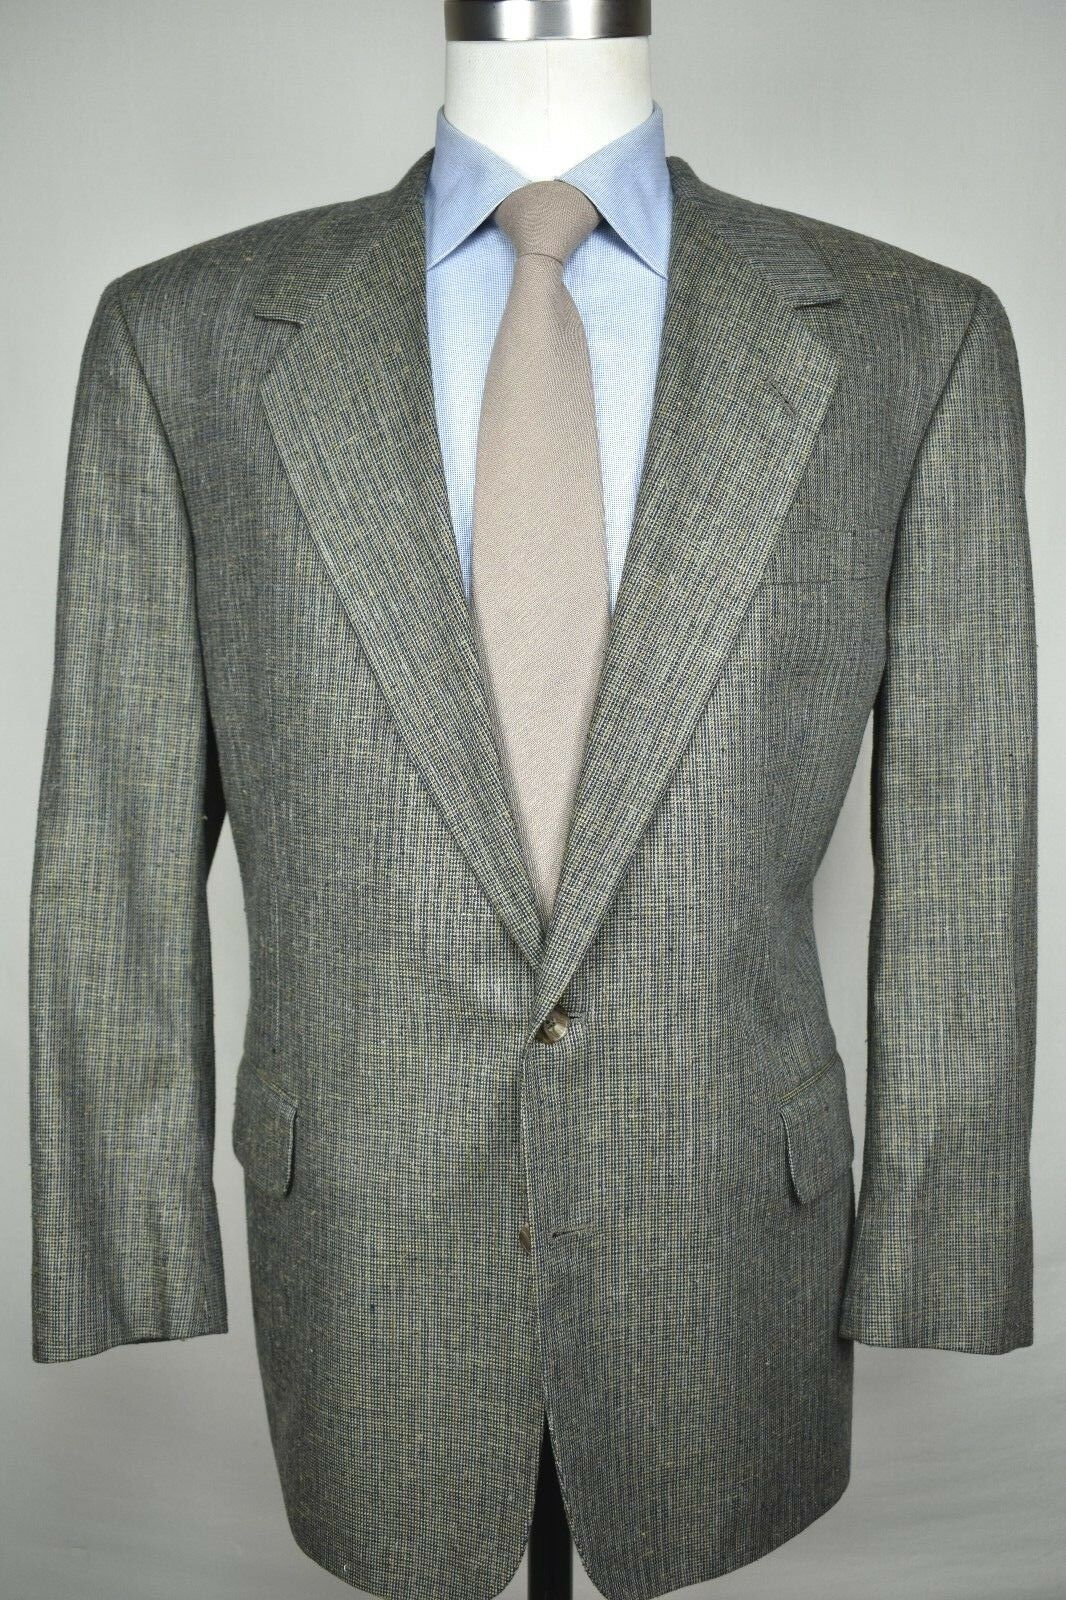 Tom James Innocenti Dark Grün/Braun Silk Two Button Sport Coat  Größe: 44R